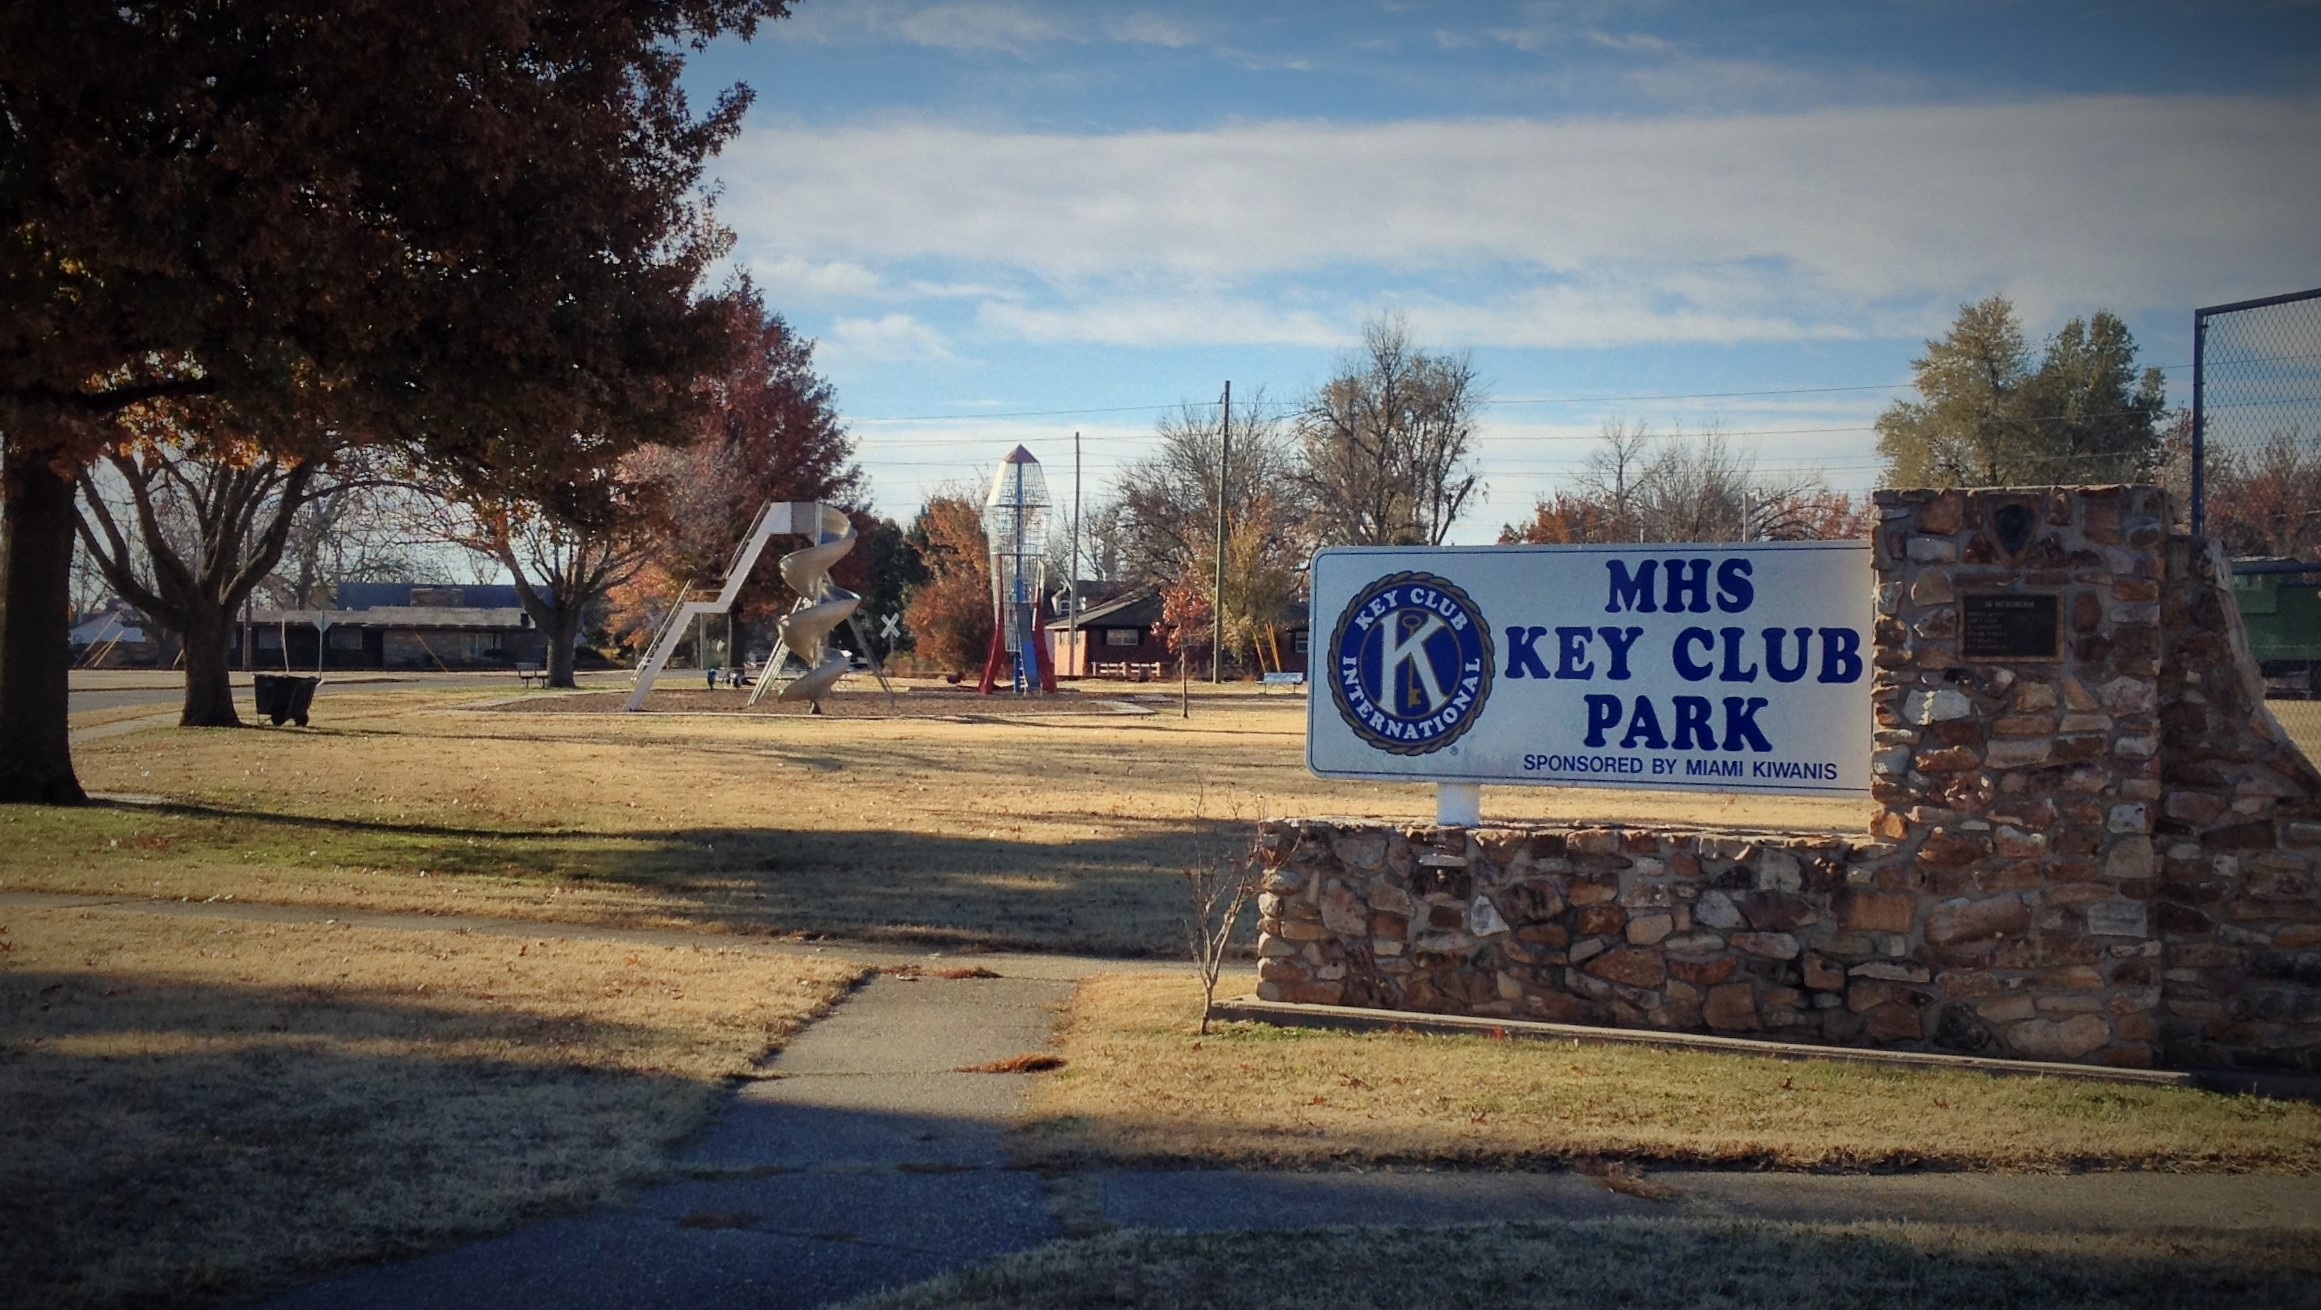 MHS Key Club Park